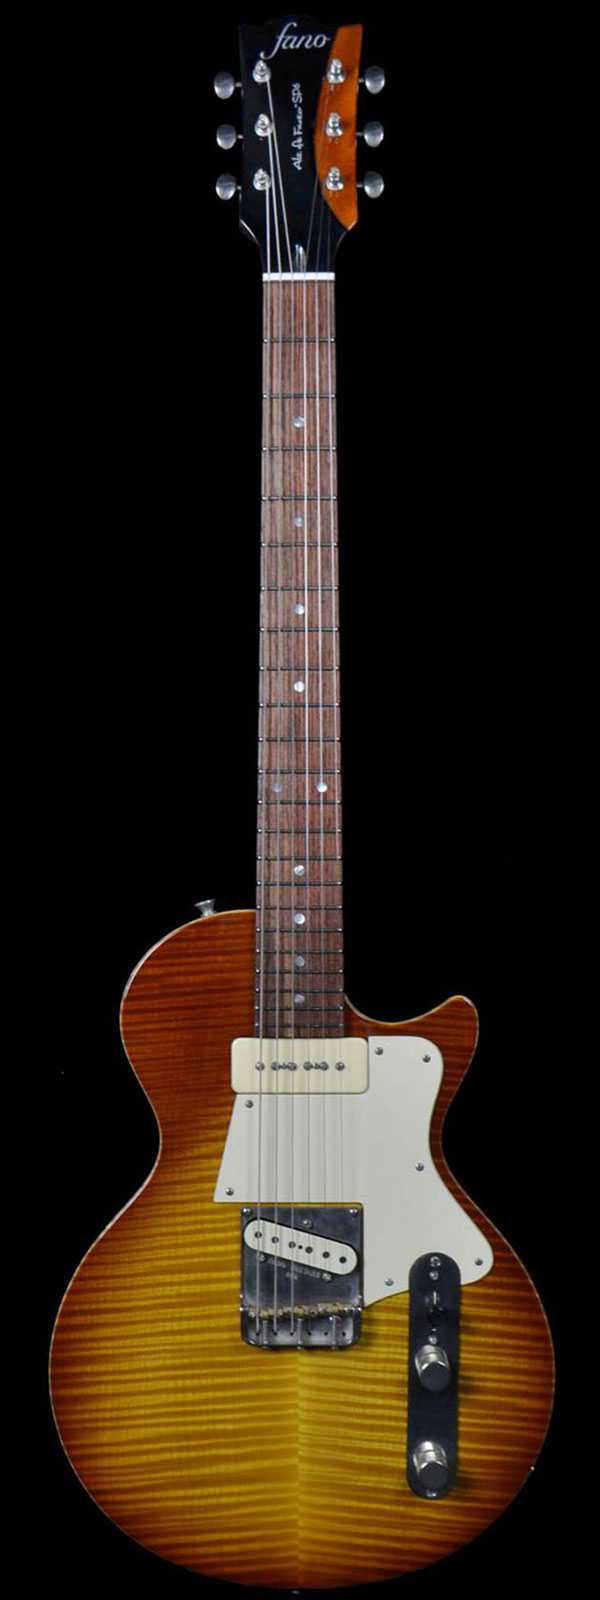 Fano Alt de SP6 Flame Top Tobacco Burst